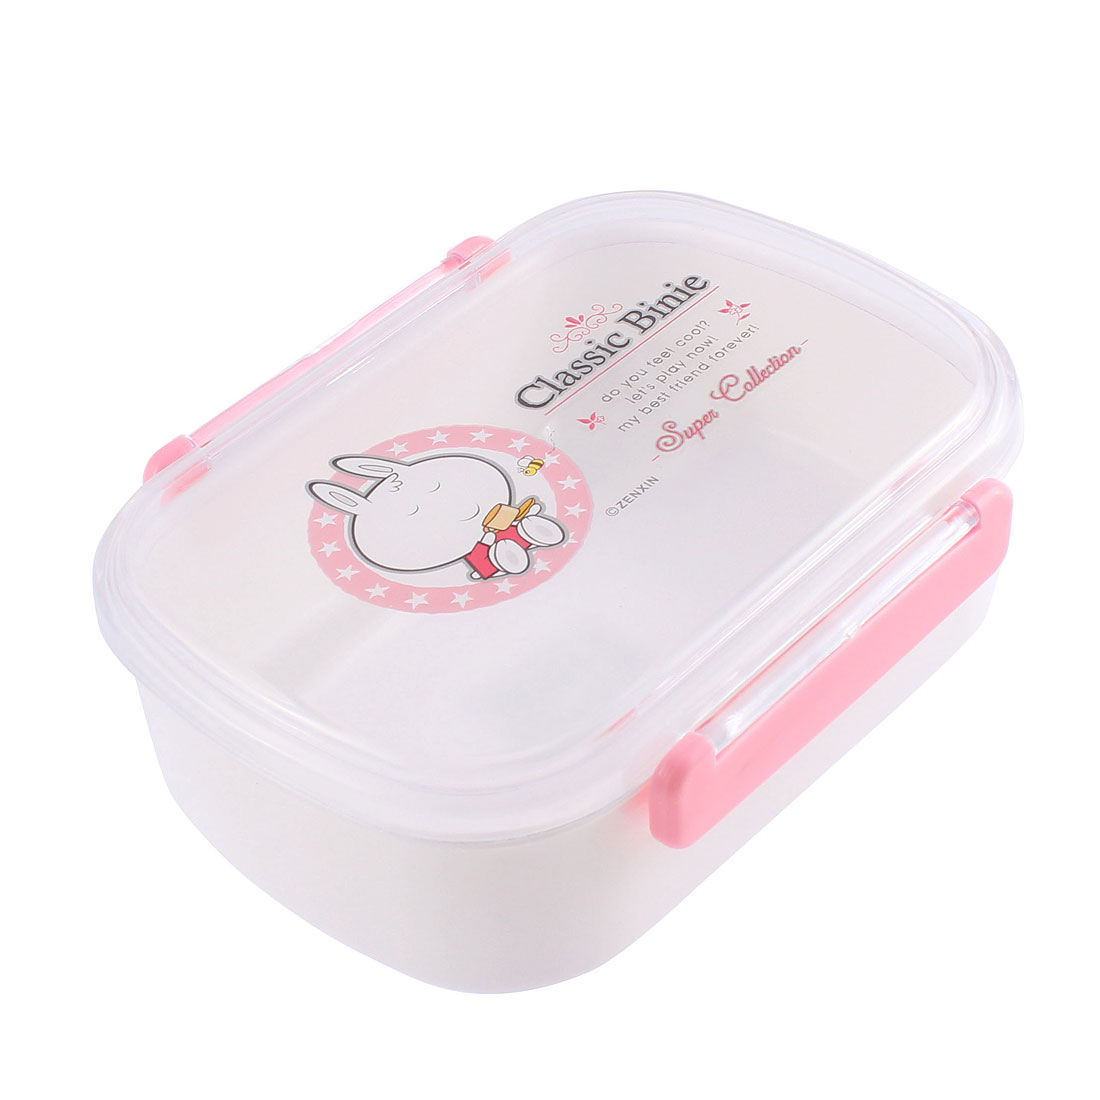 Home School Plastic Bento Food Lunch Box Case Storage Container w Spoon